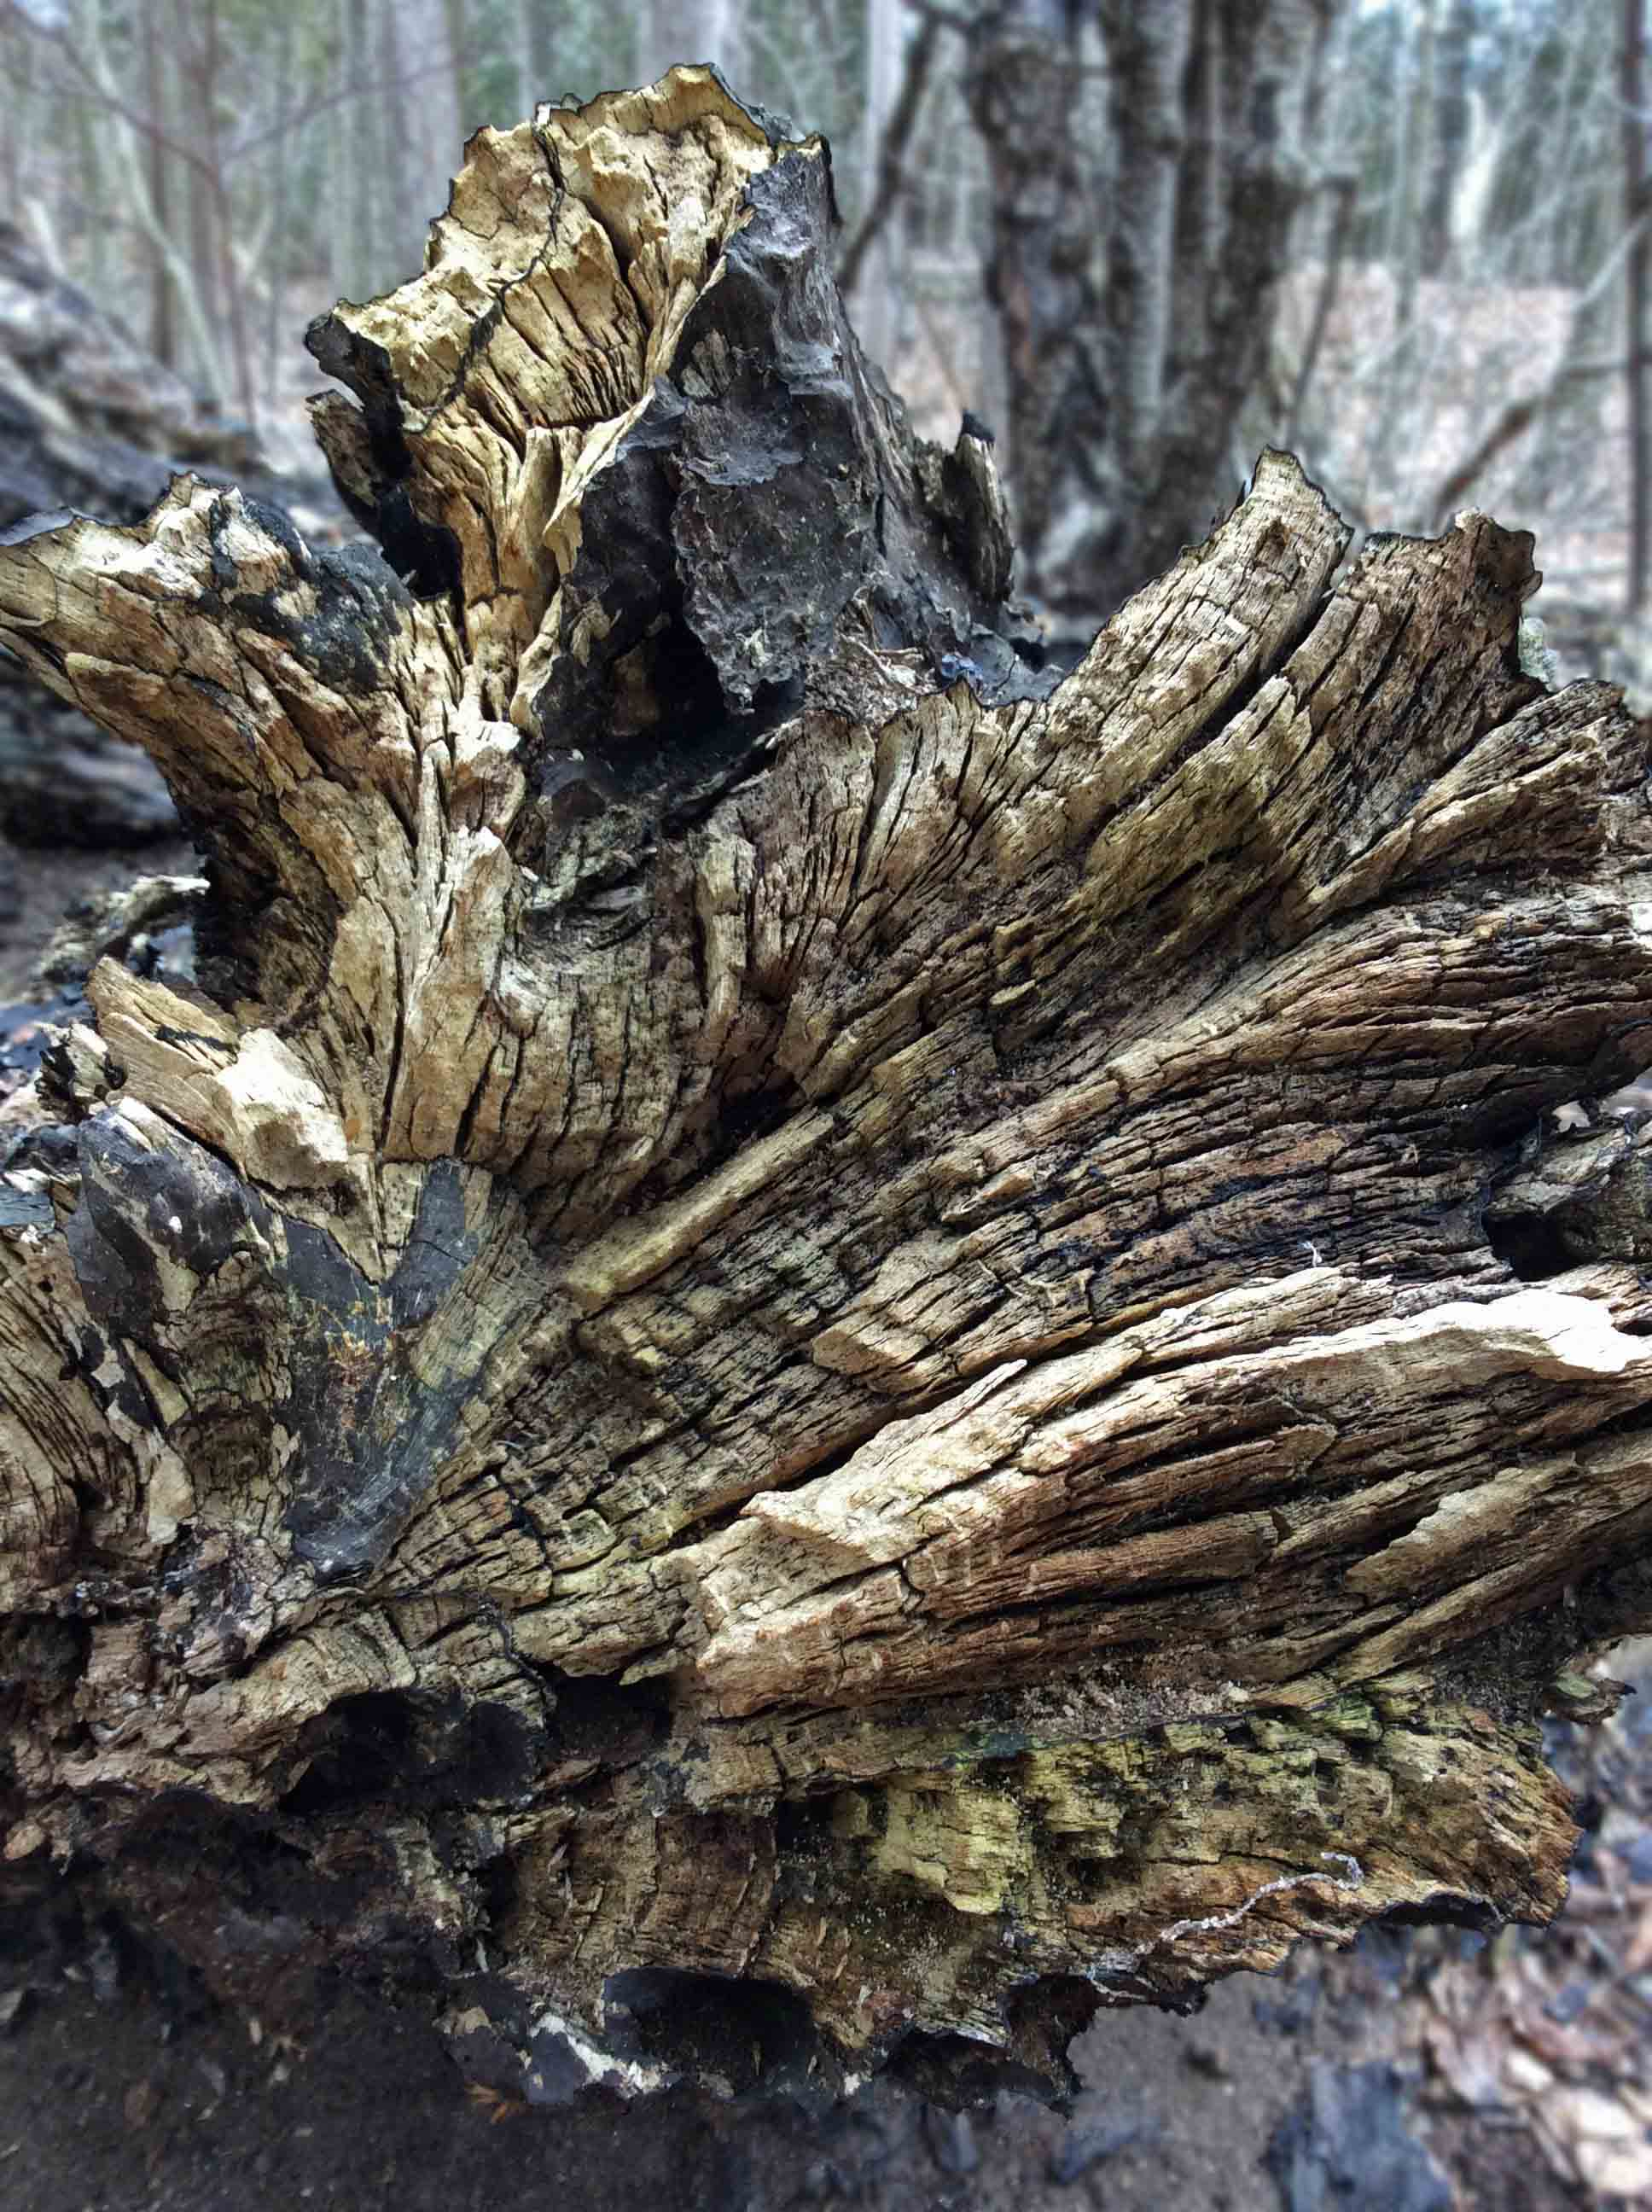 uprooted stump carbon cushion fungus